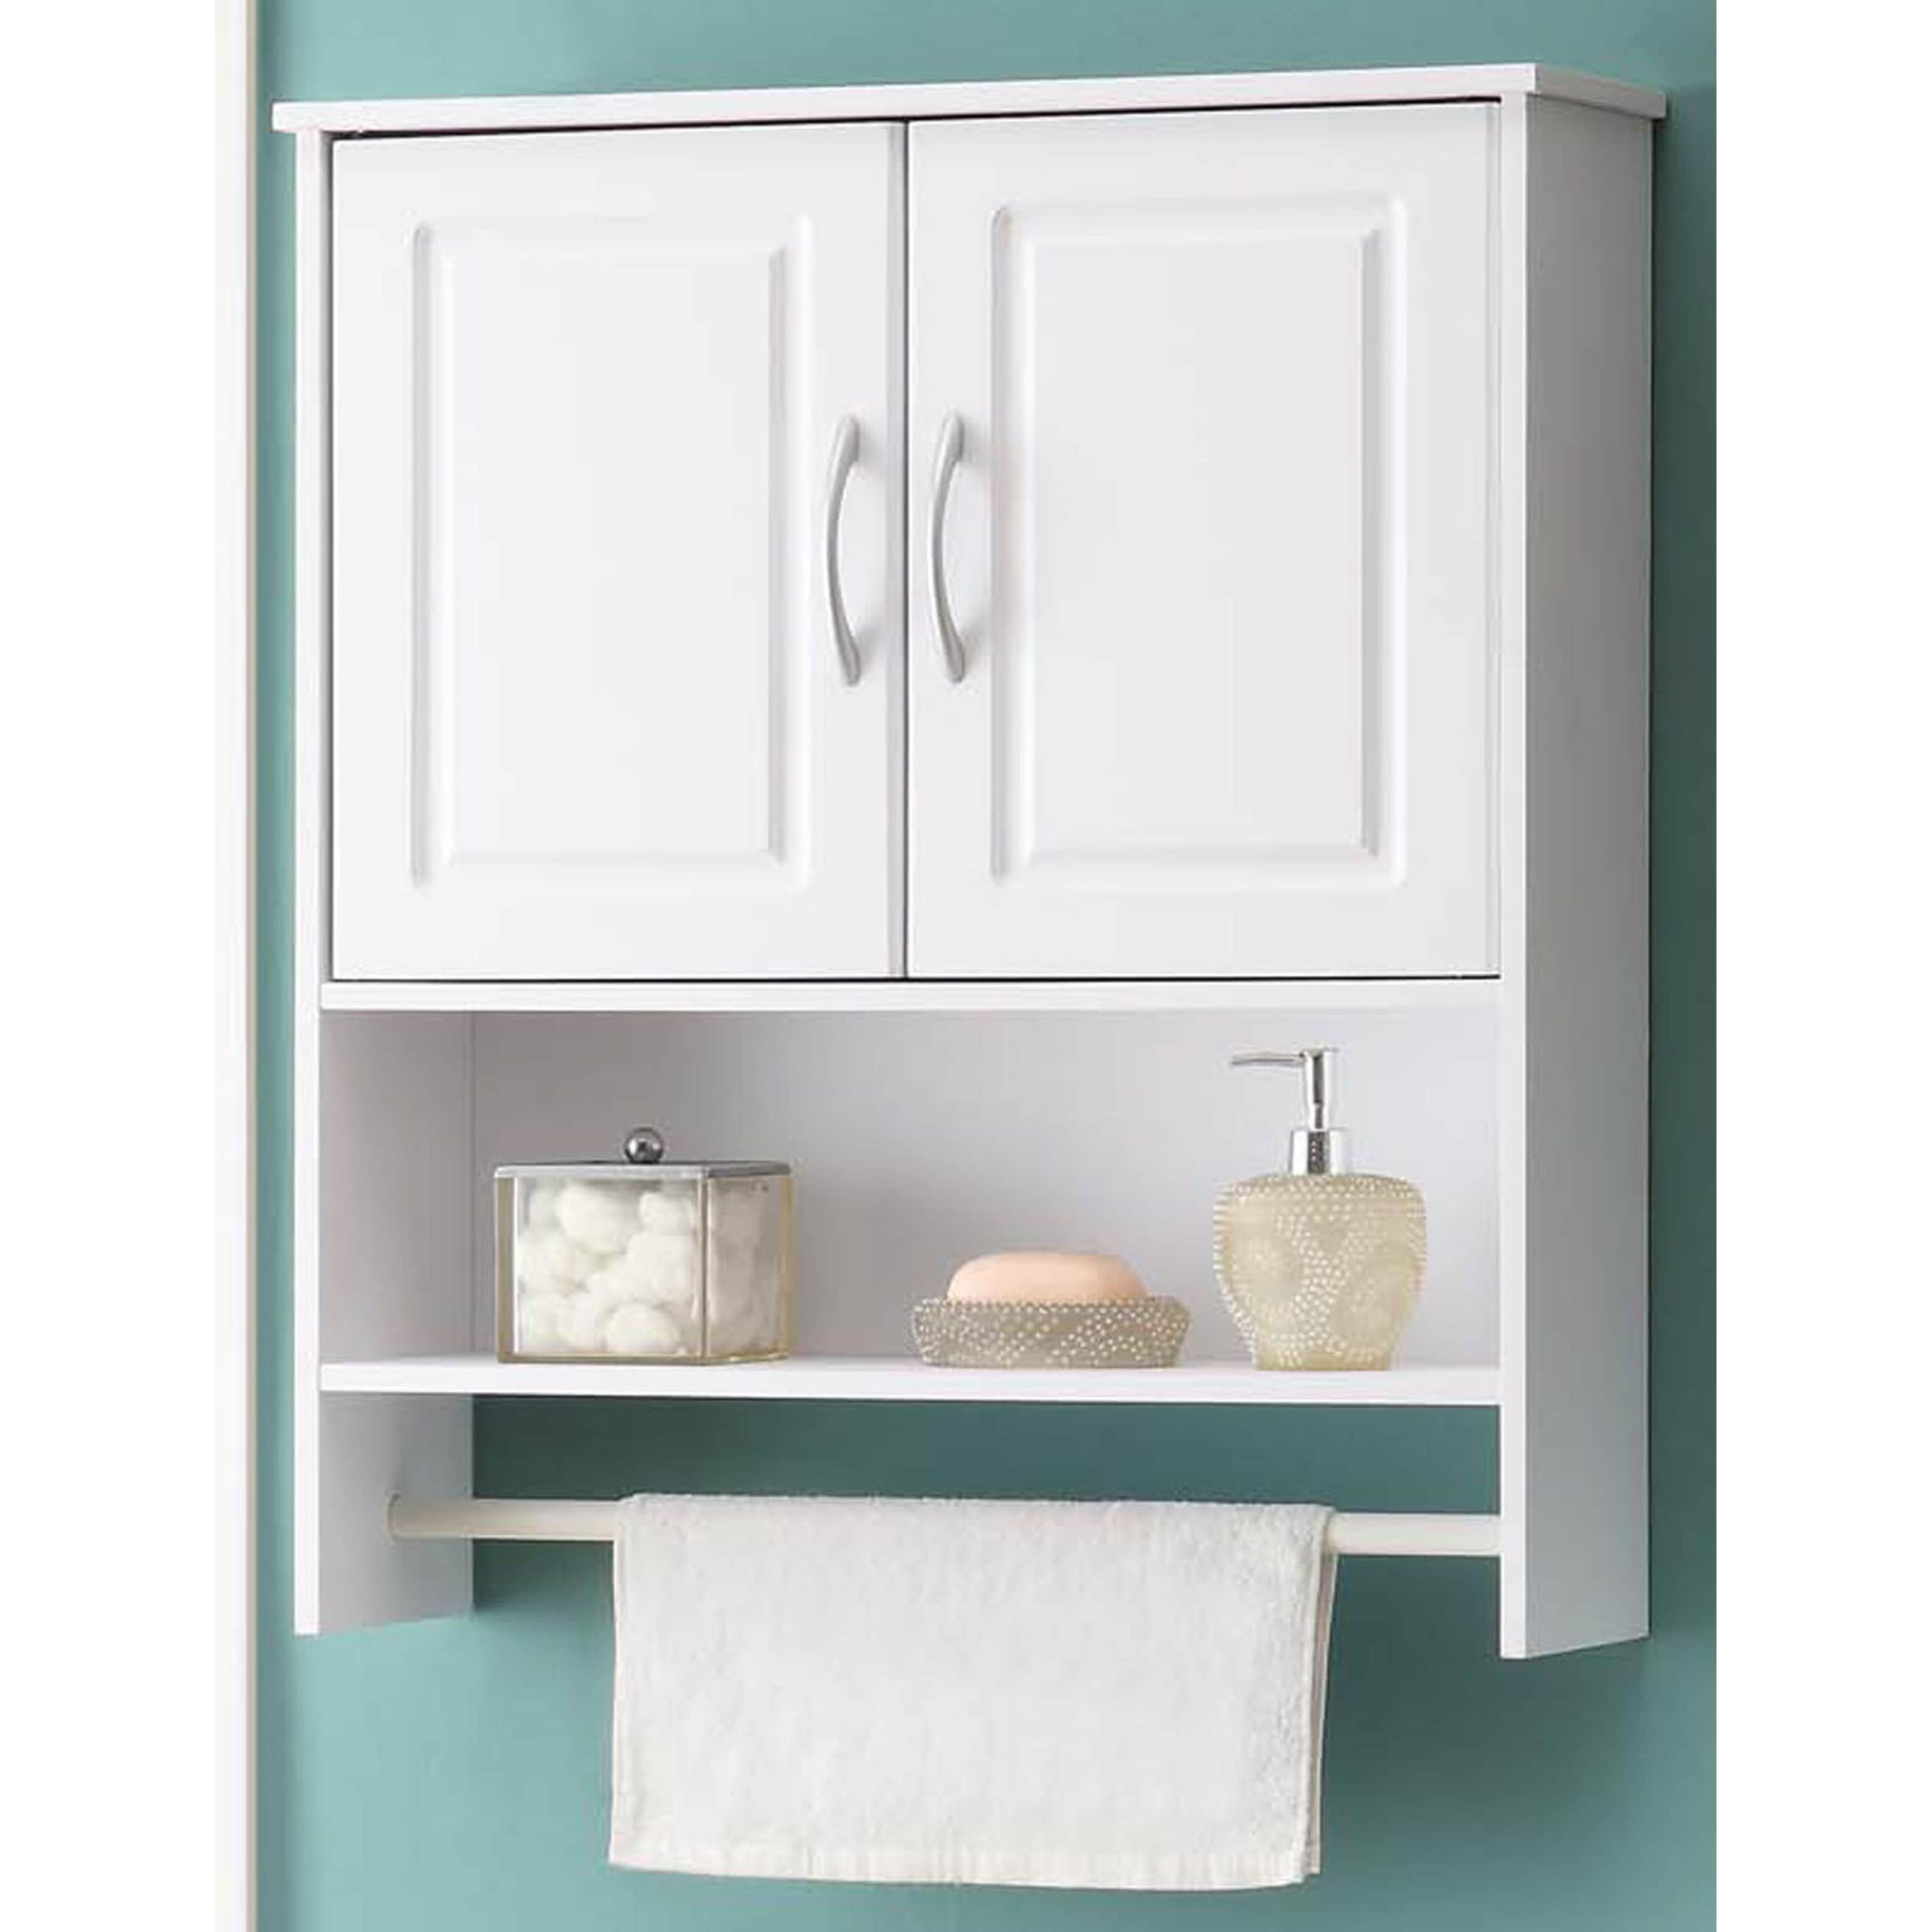 Genial Shop Bathroom White Water Resistant Laminate Wall Cabinet With Towel Rack    Free Shipping Today   Overstock   12427041